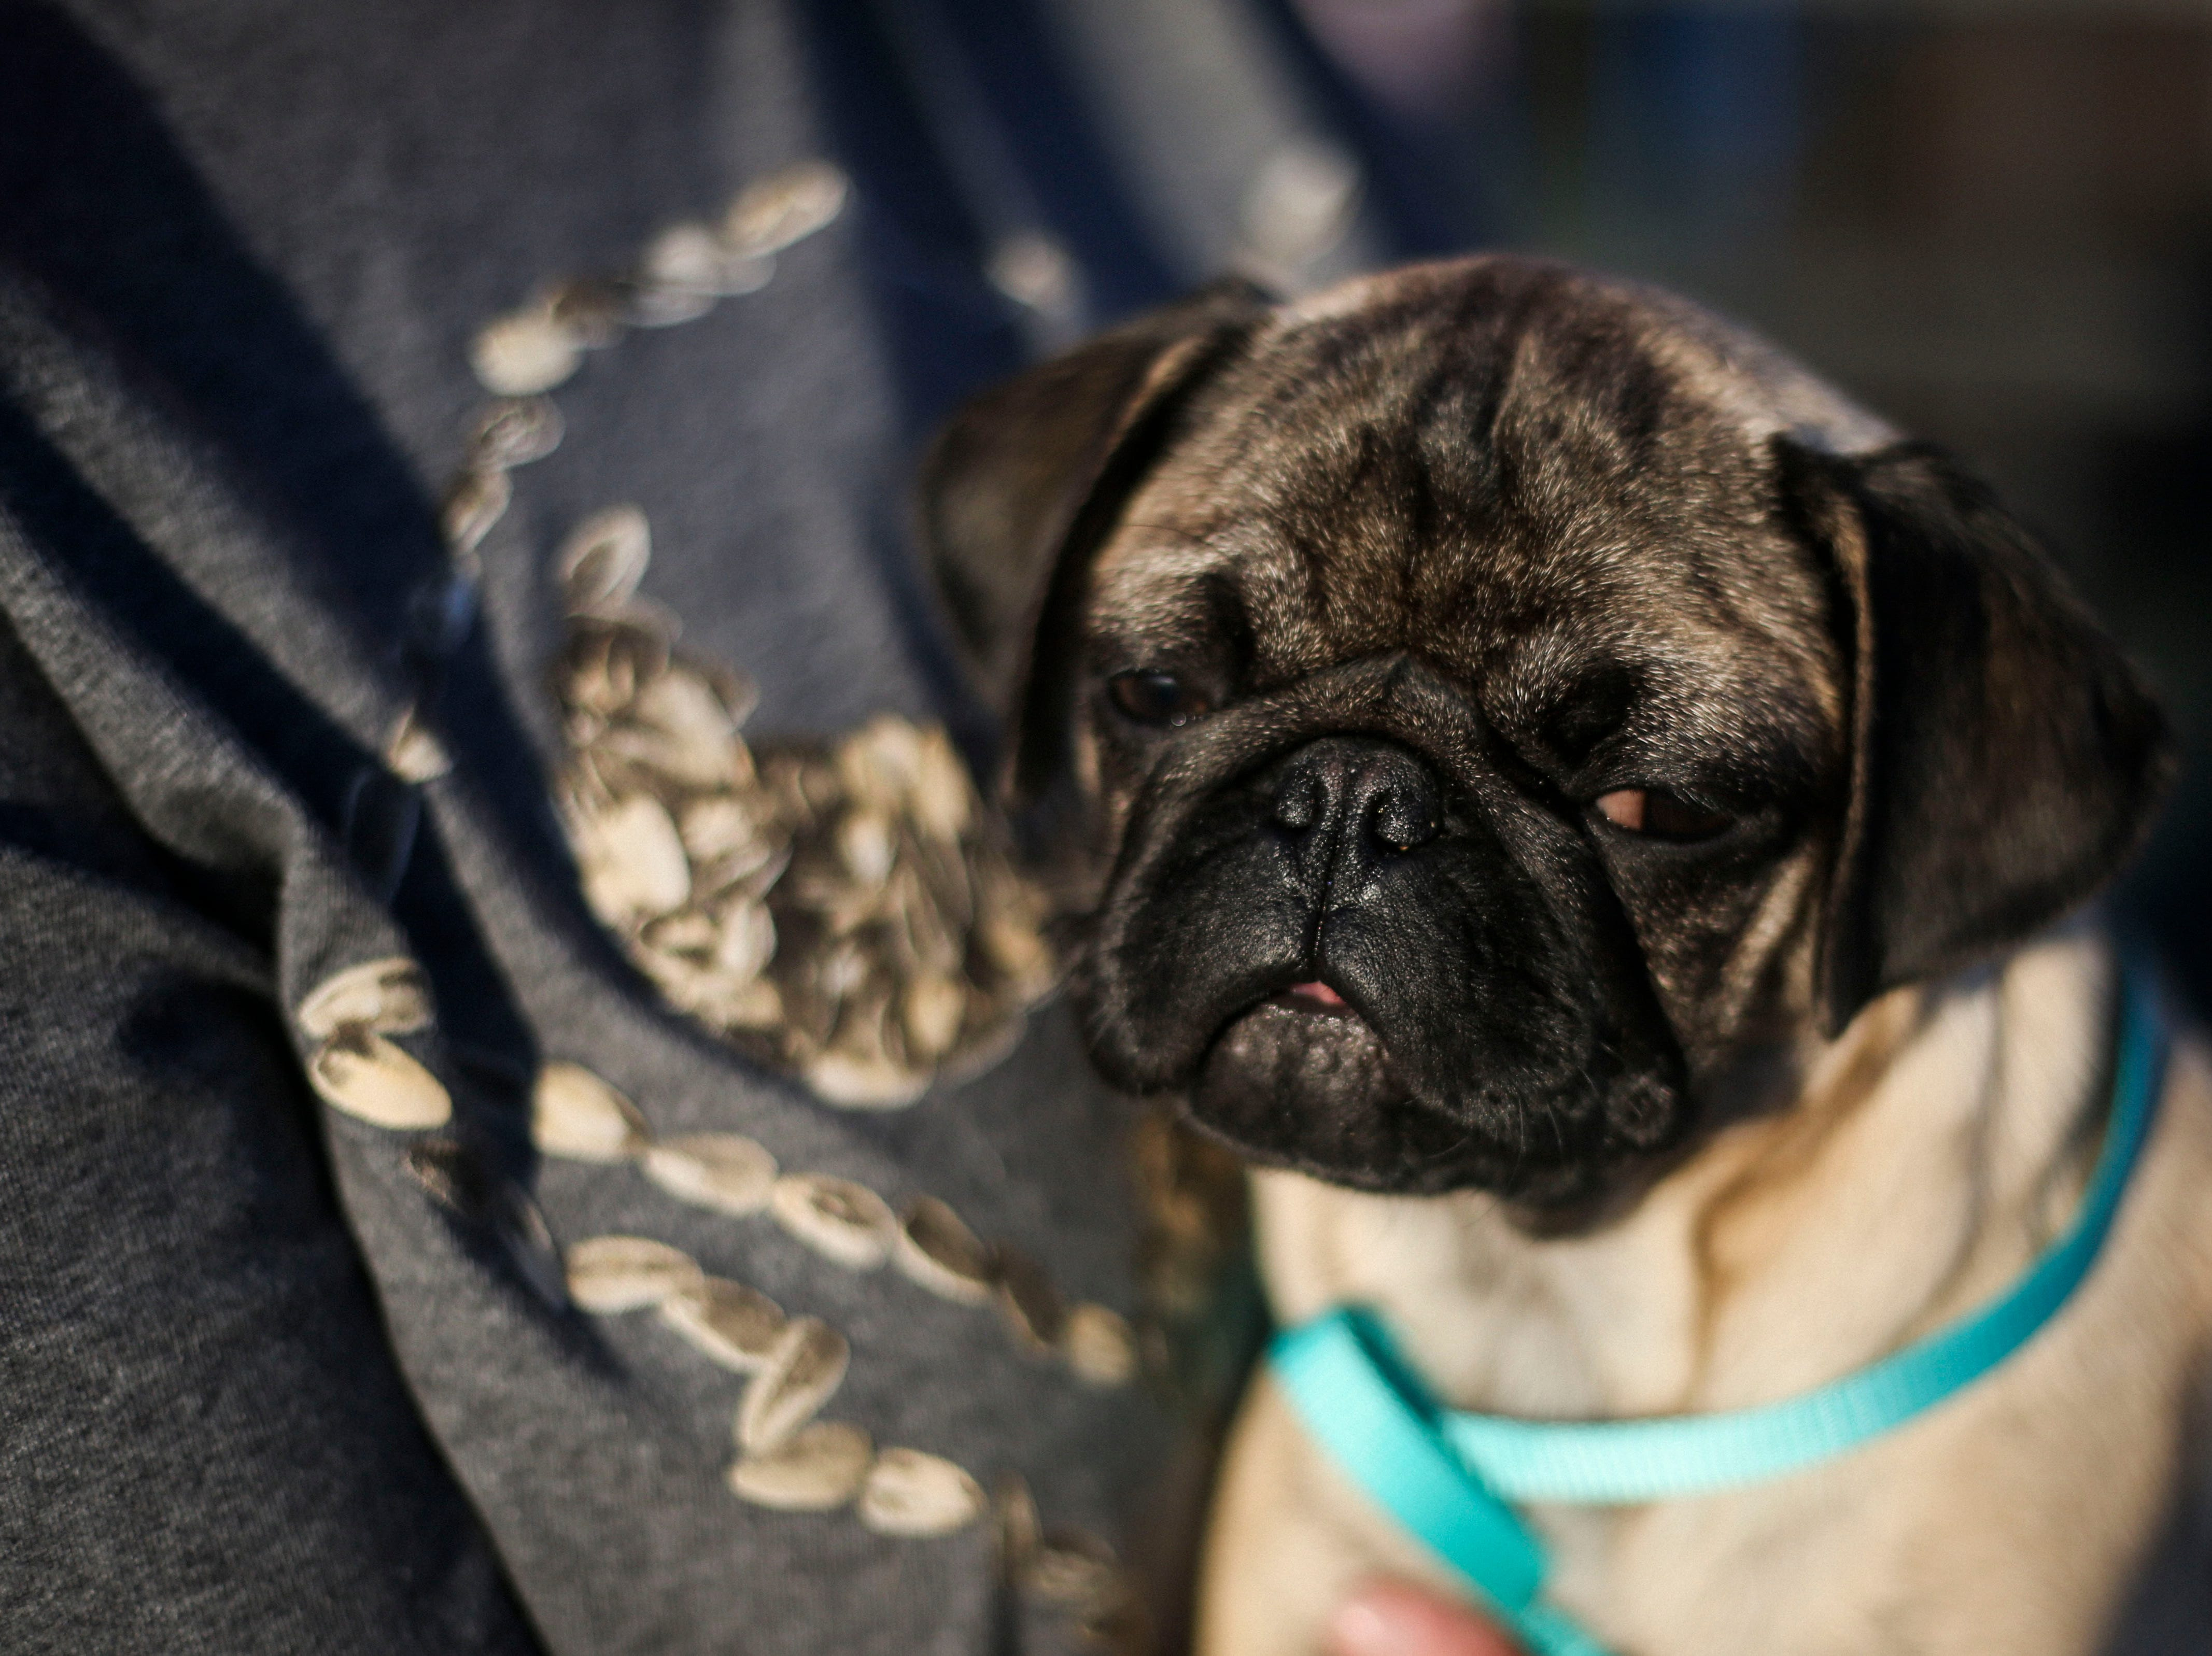 Gidget the pug is held by her owner during the Louisville Bats v. Syracuse Mets game during Dog Day Nights at Louisville Slugger Field in downtown Louisville, Ky. on Tuesday, May 7, 2019.